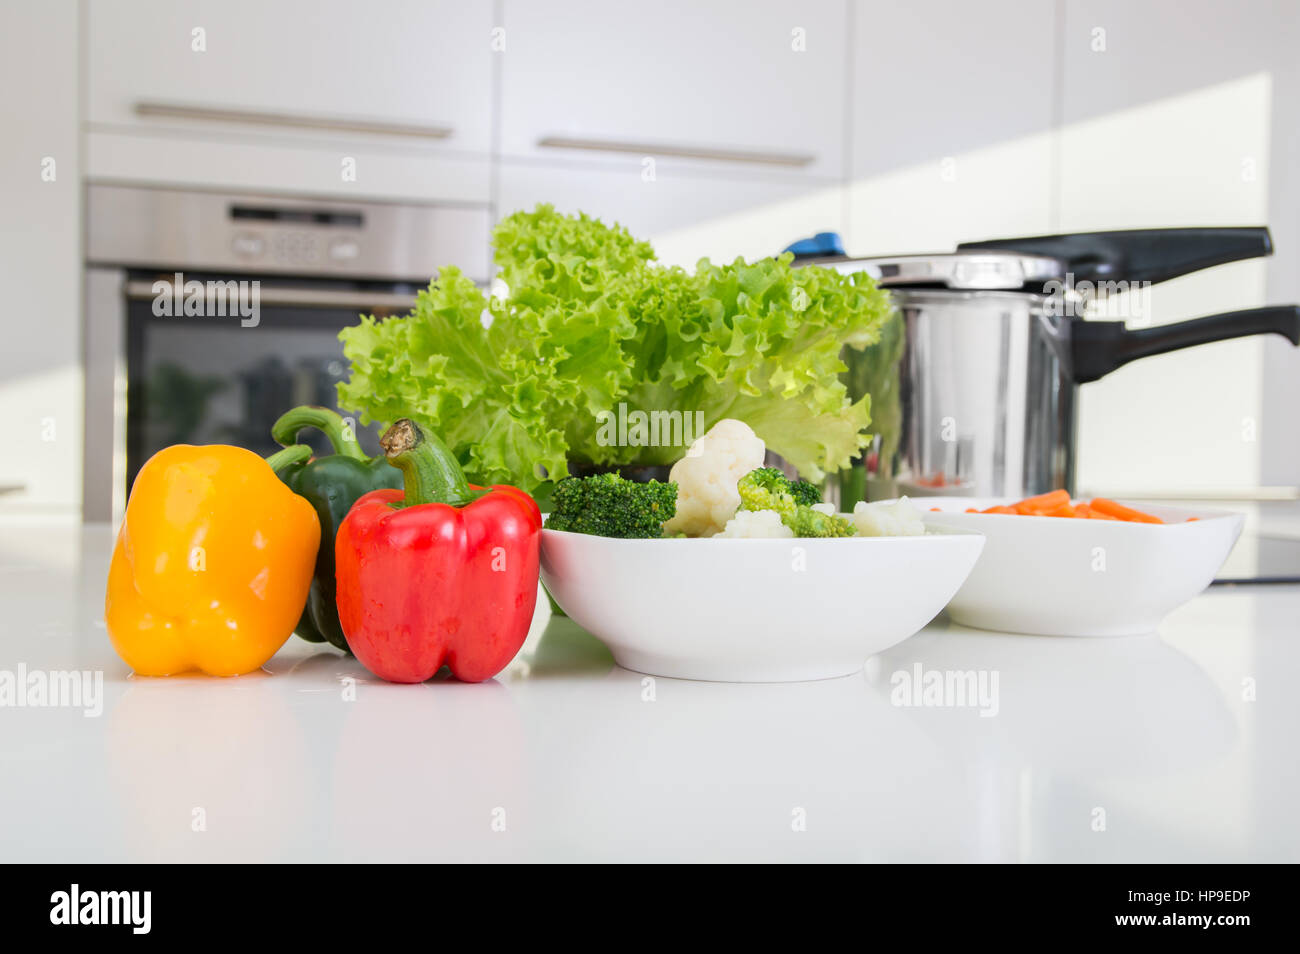 Pressure cooker and vegetables prepared to be cooked. - Stock Image